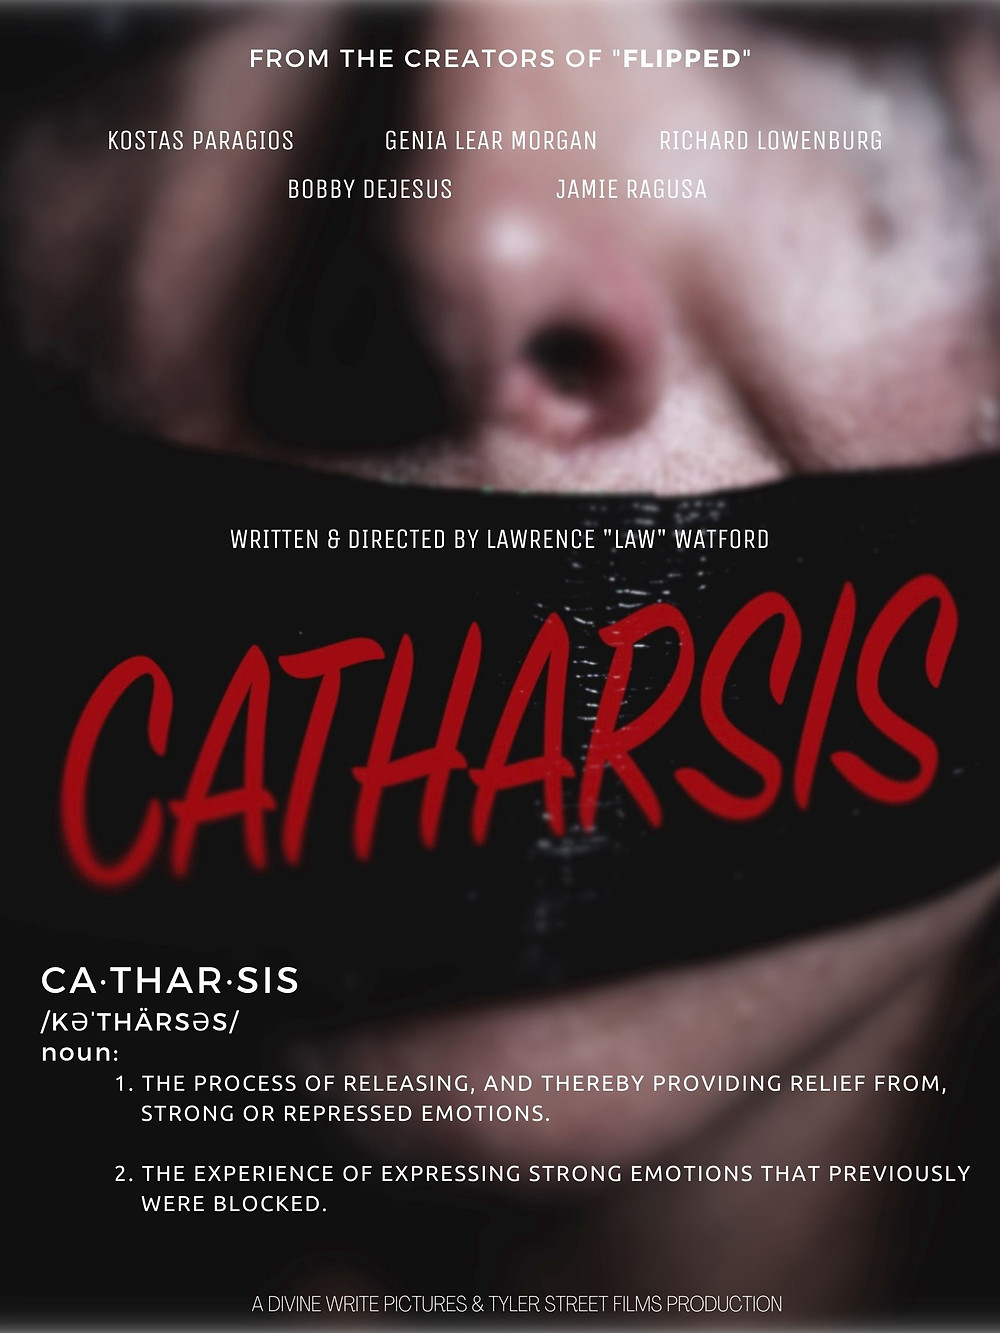 Poster for Catharsis showing close-up of face.